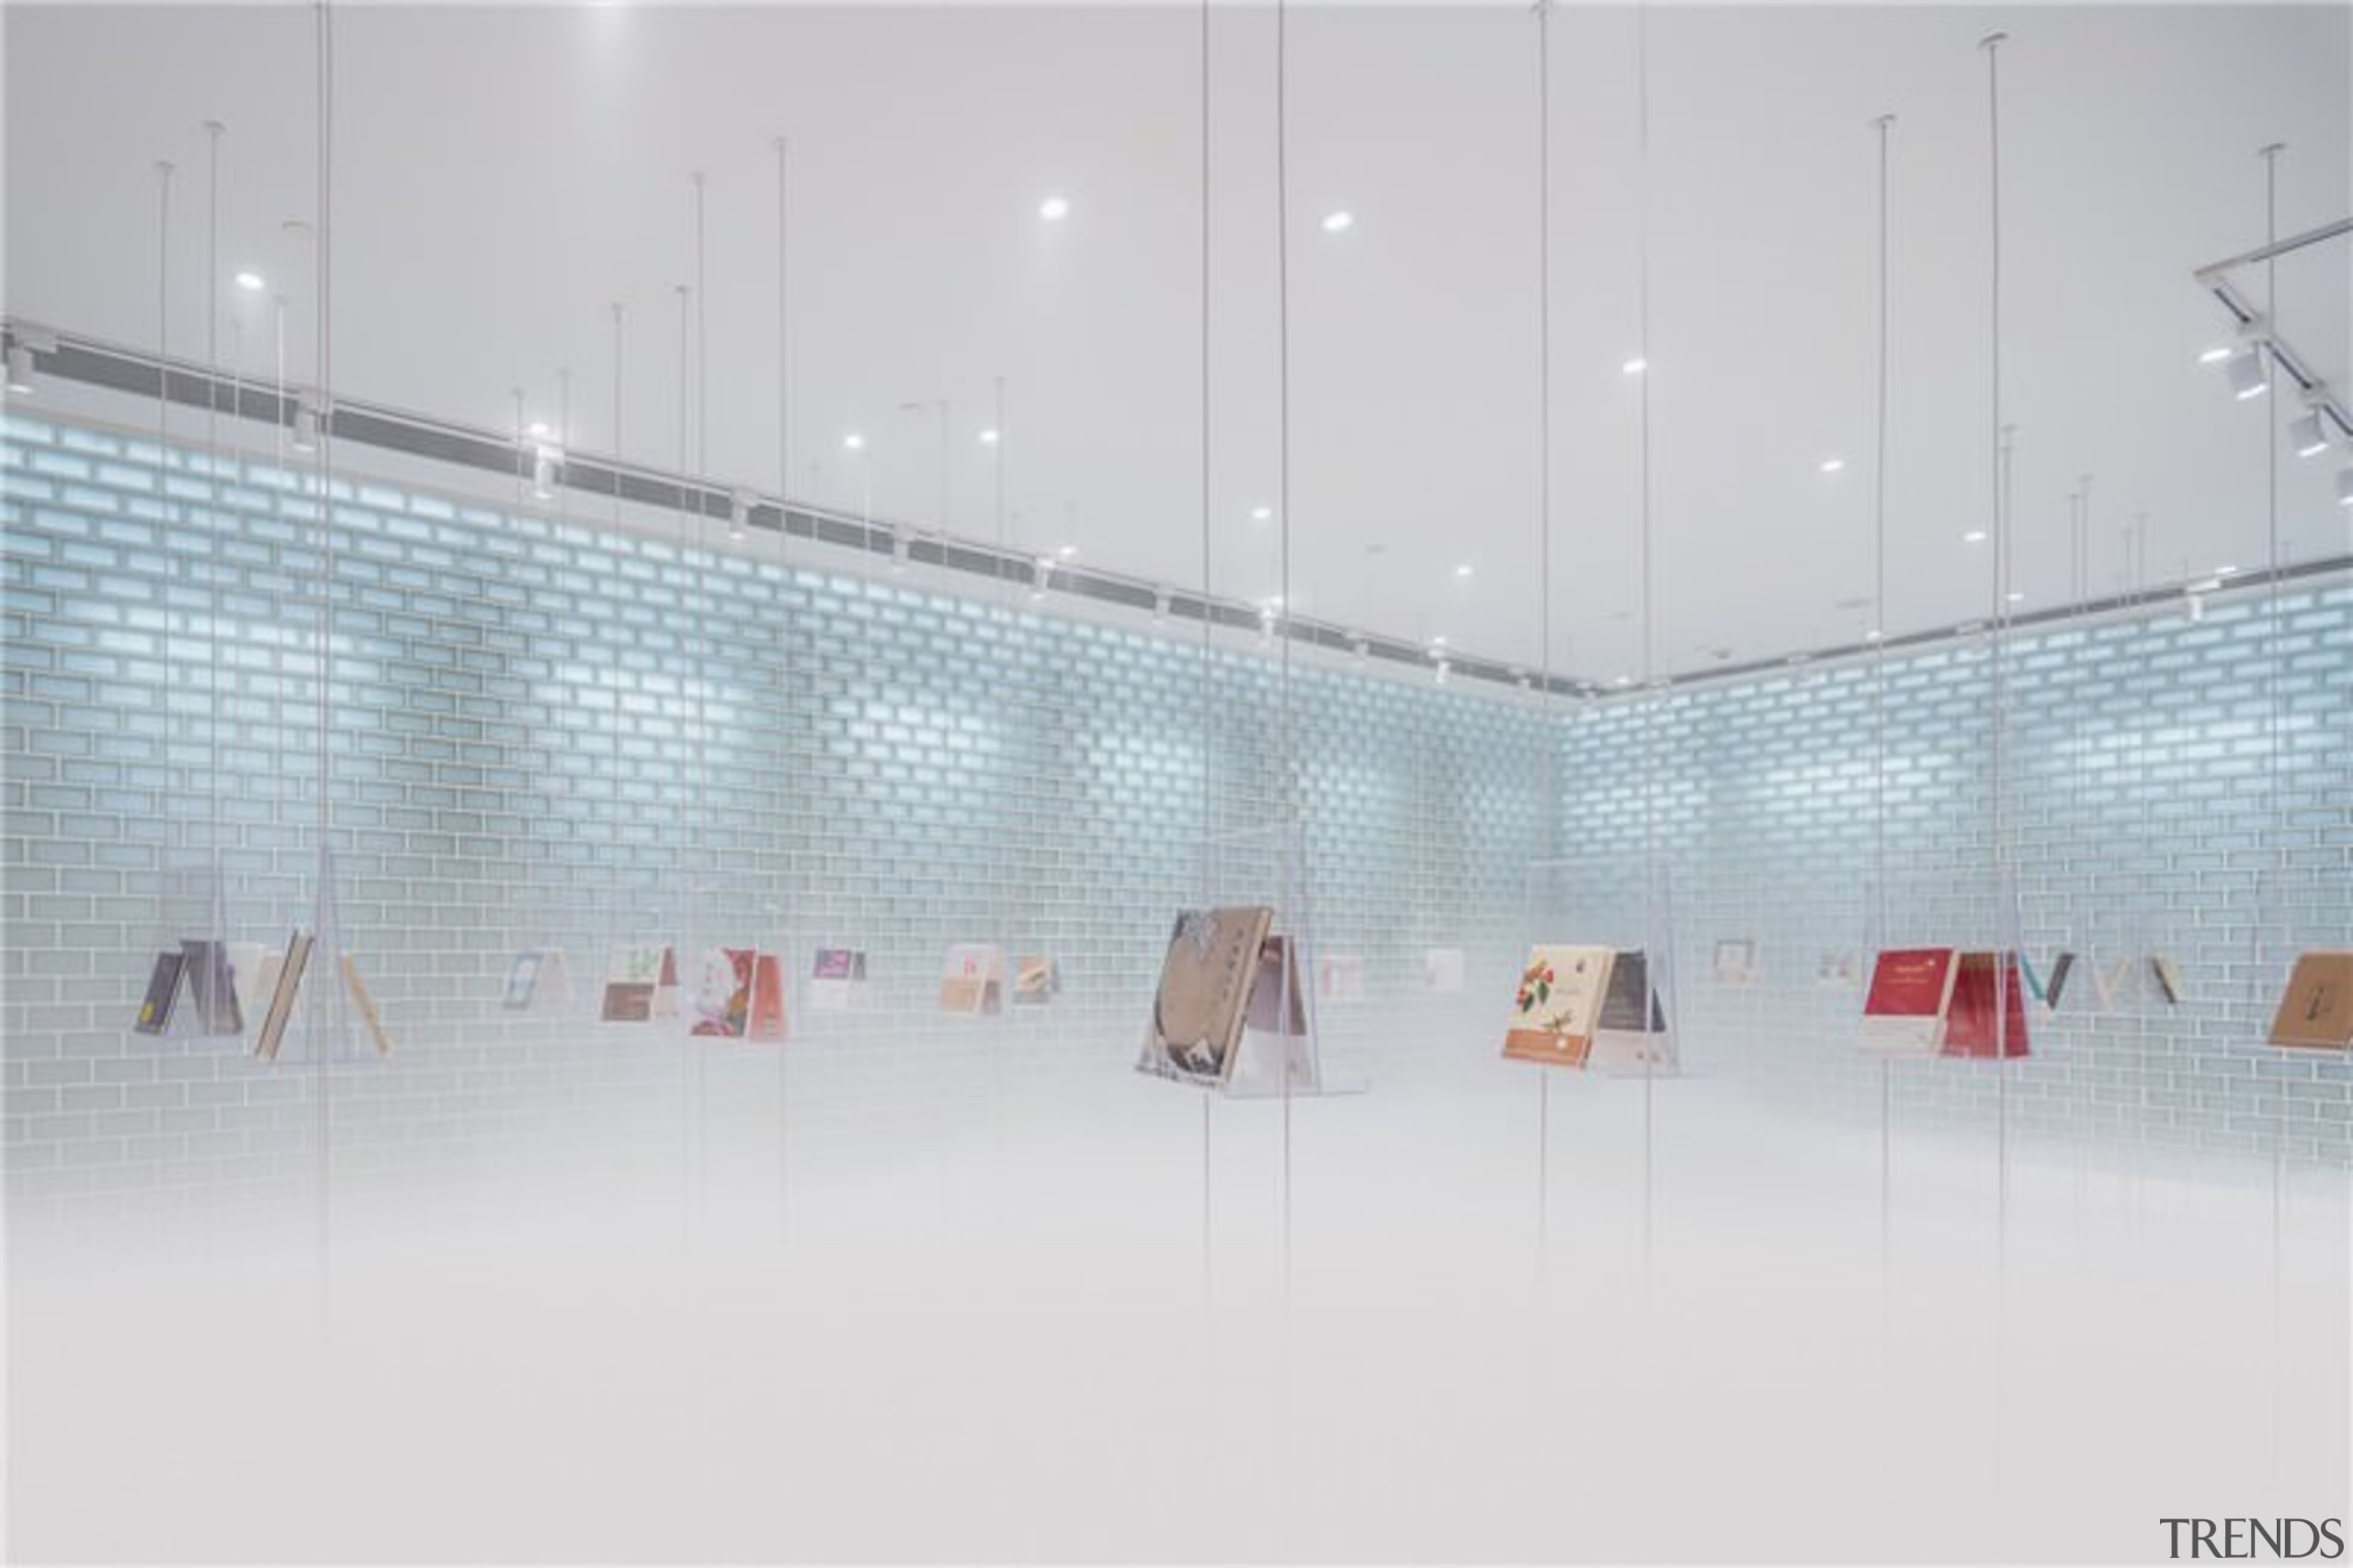 A new take on the bookstore - A architecture, ceiling, design, glass, interior design, light, lighting, line, product design, gray